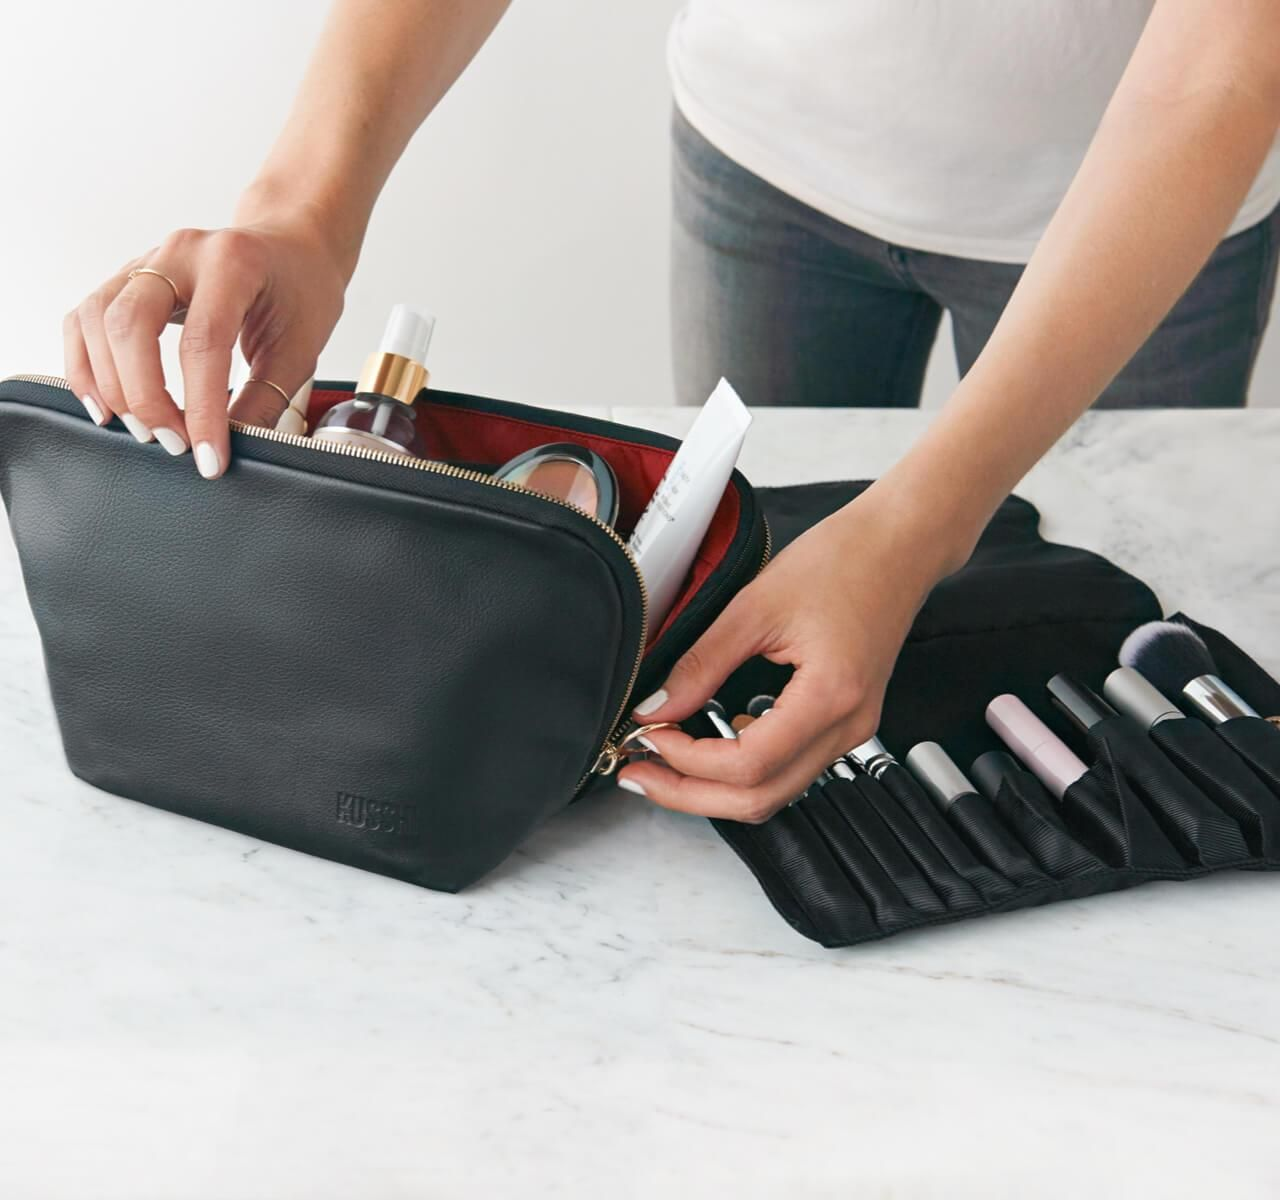 Kusshi The Best Organized Makeup Bag for Home and Travel